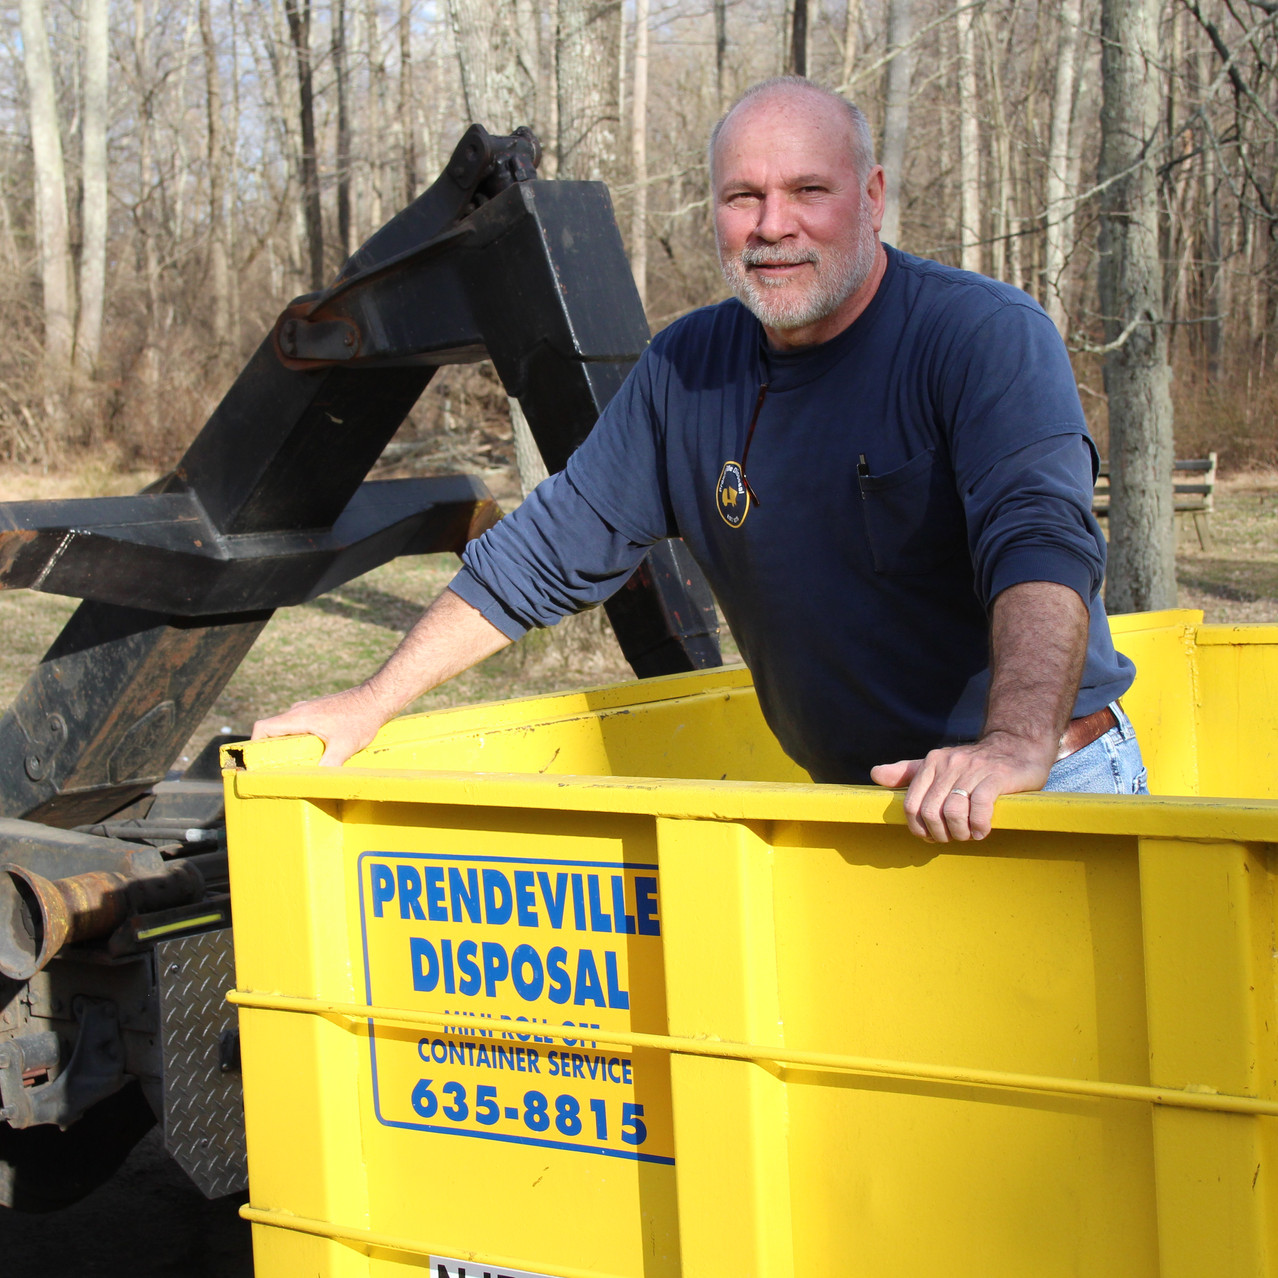 Call Mike at Prendeville Disposal.